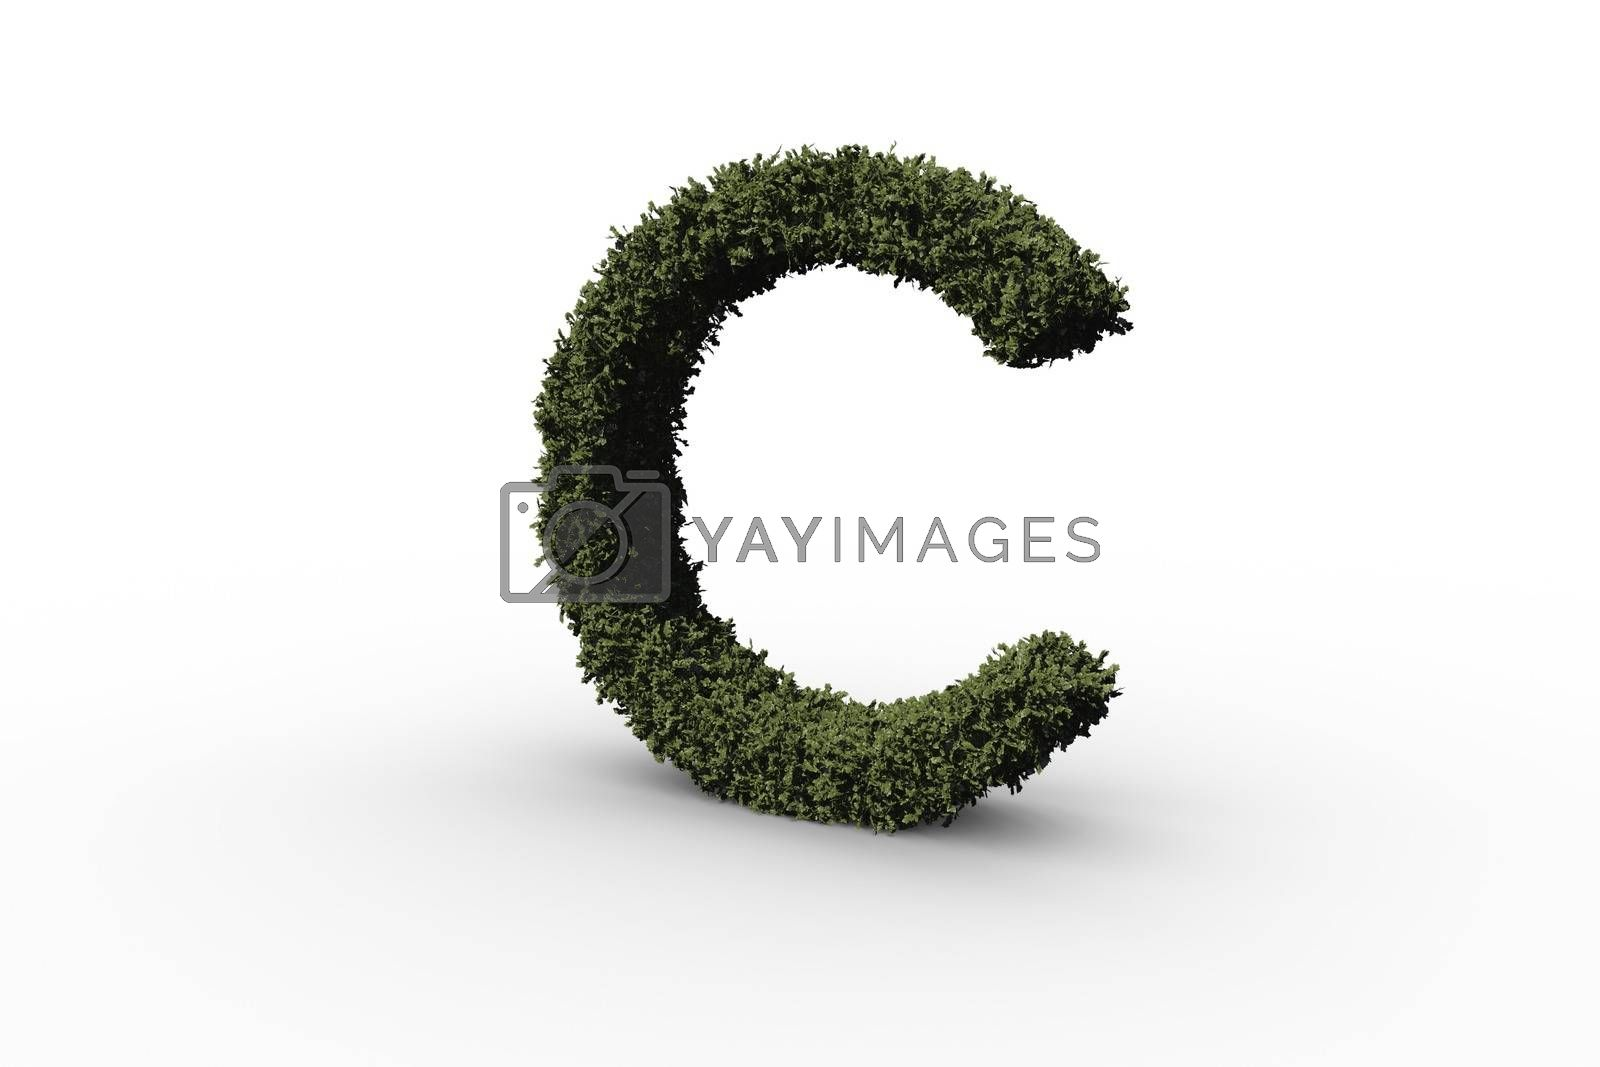 Royalty free image of Capital letter c made of leaves by Wavebreakmedia